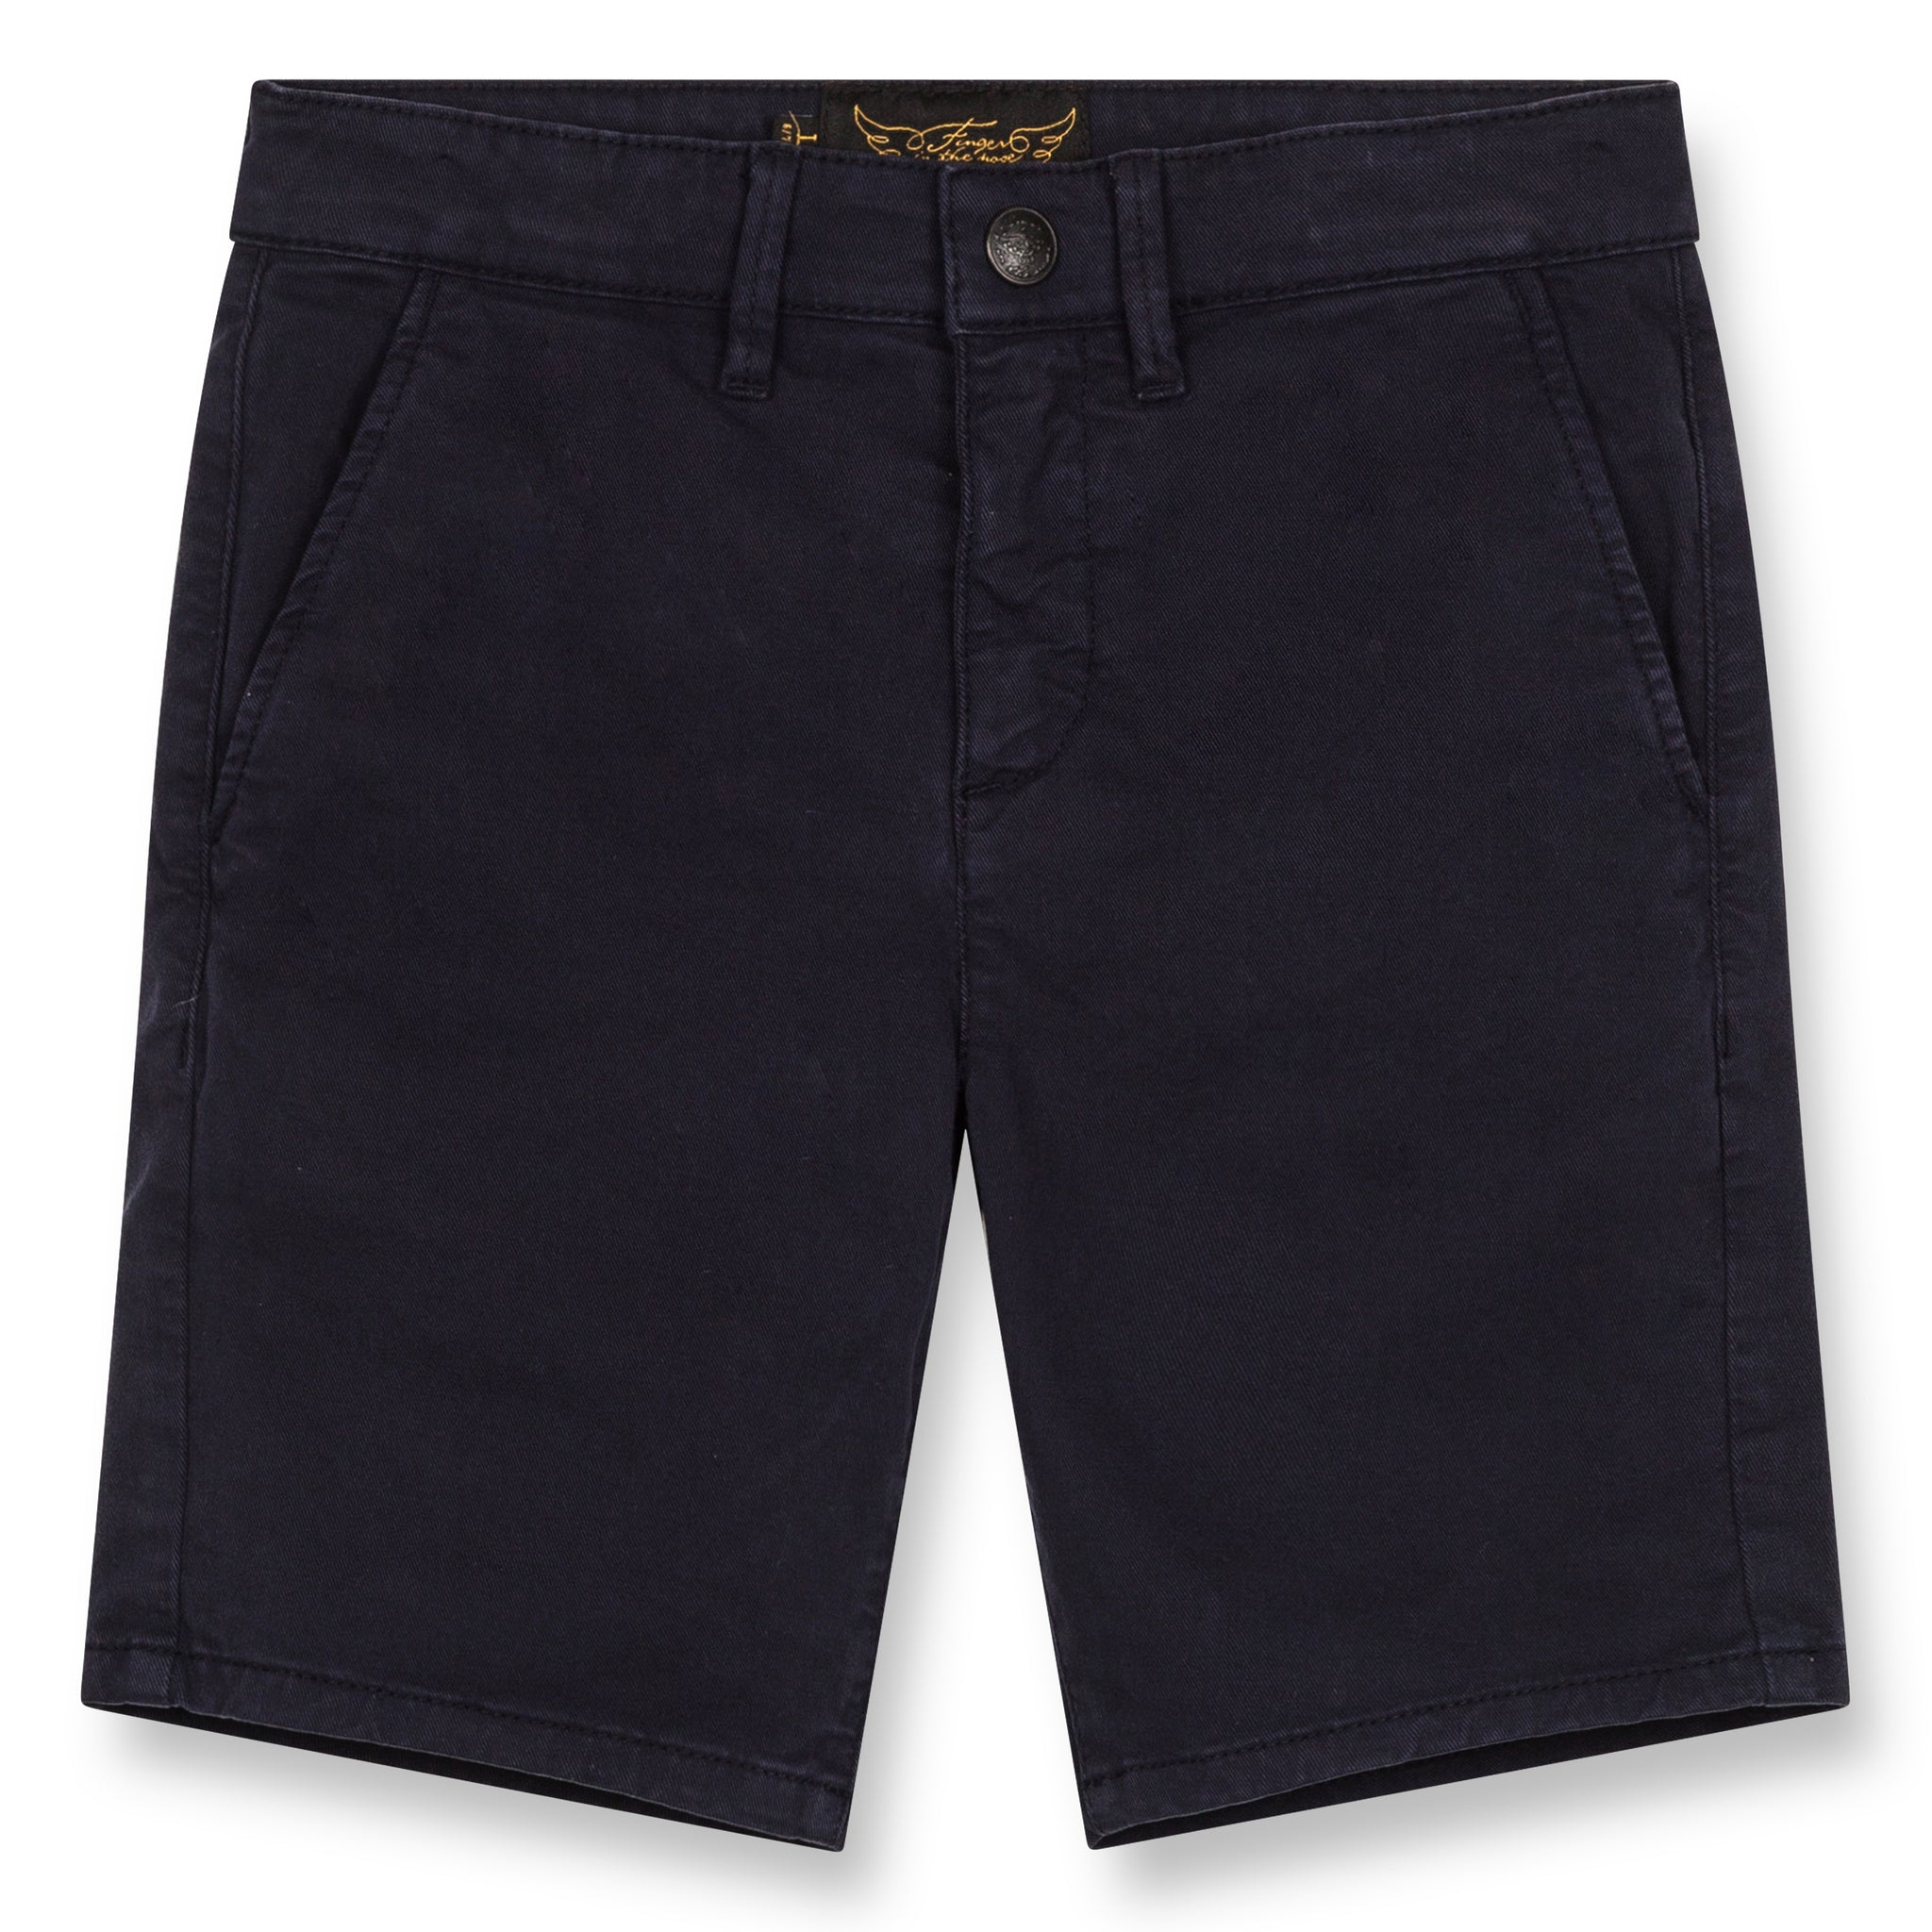 SURFER Super Navy - Chino Fit Bermuda Shorts 1